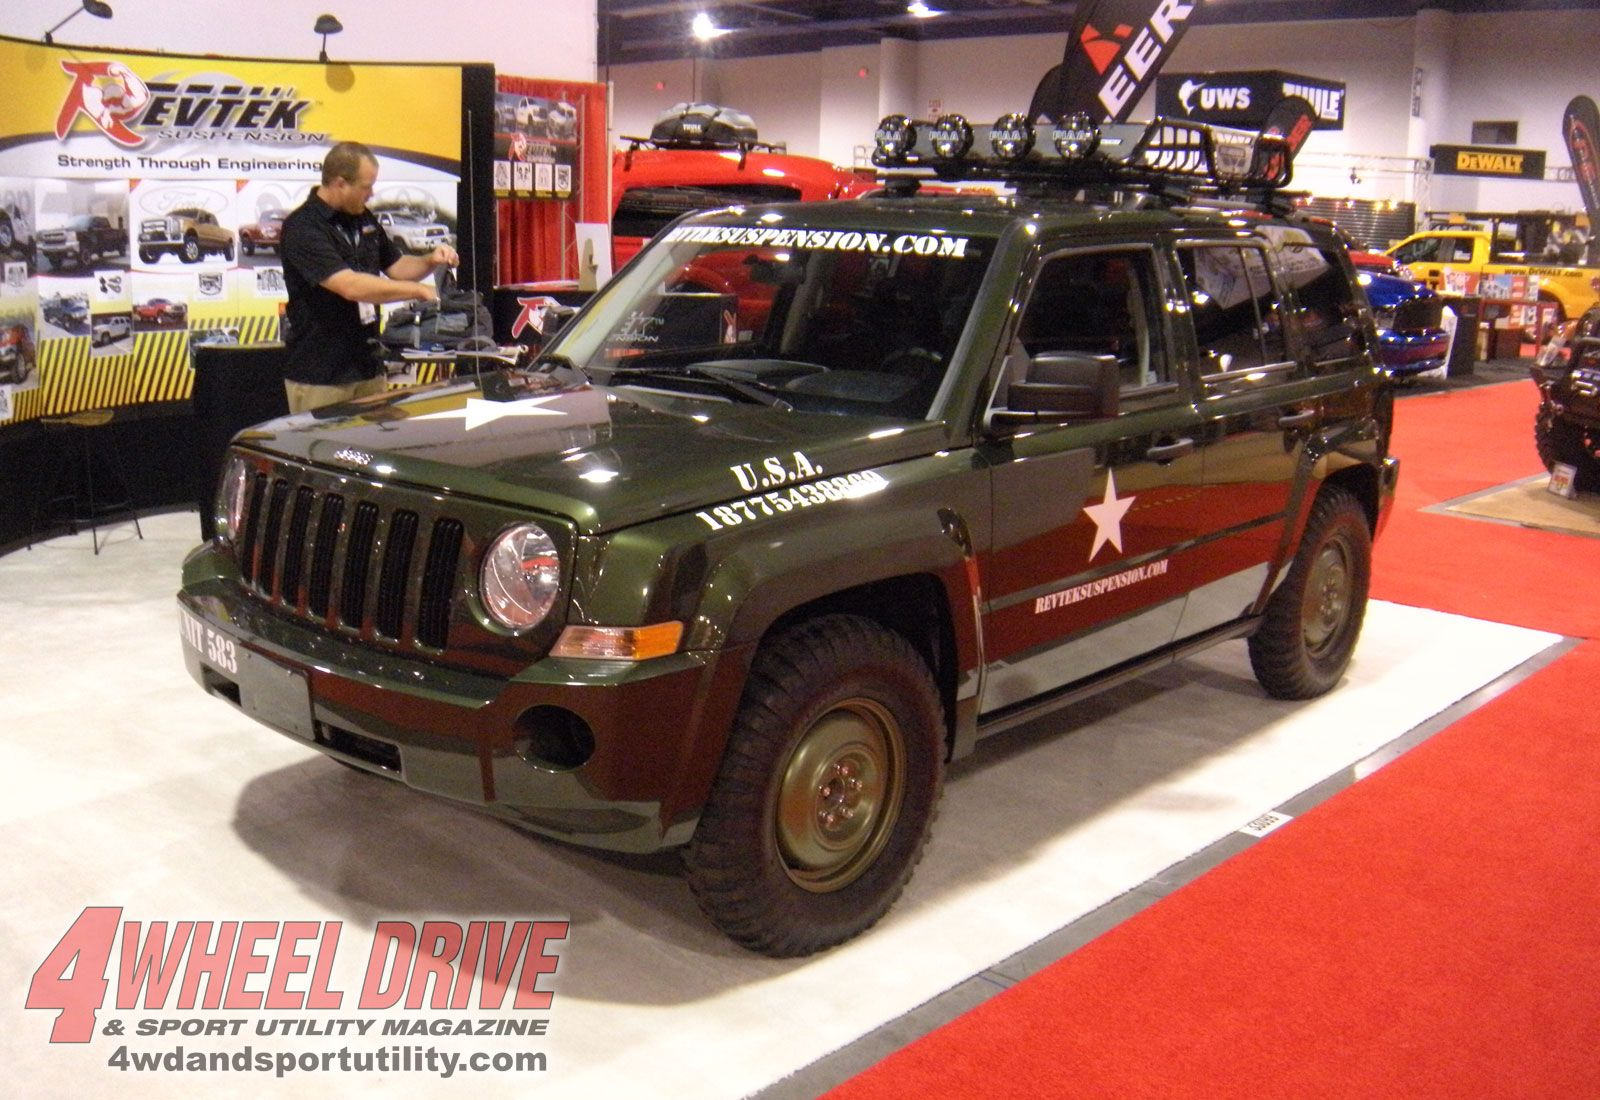 pretty close to what I wanna tricked out Jeep